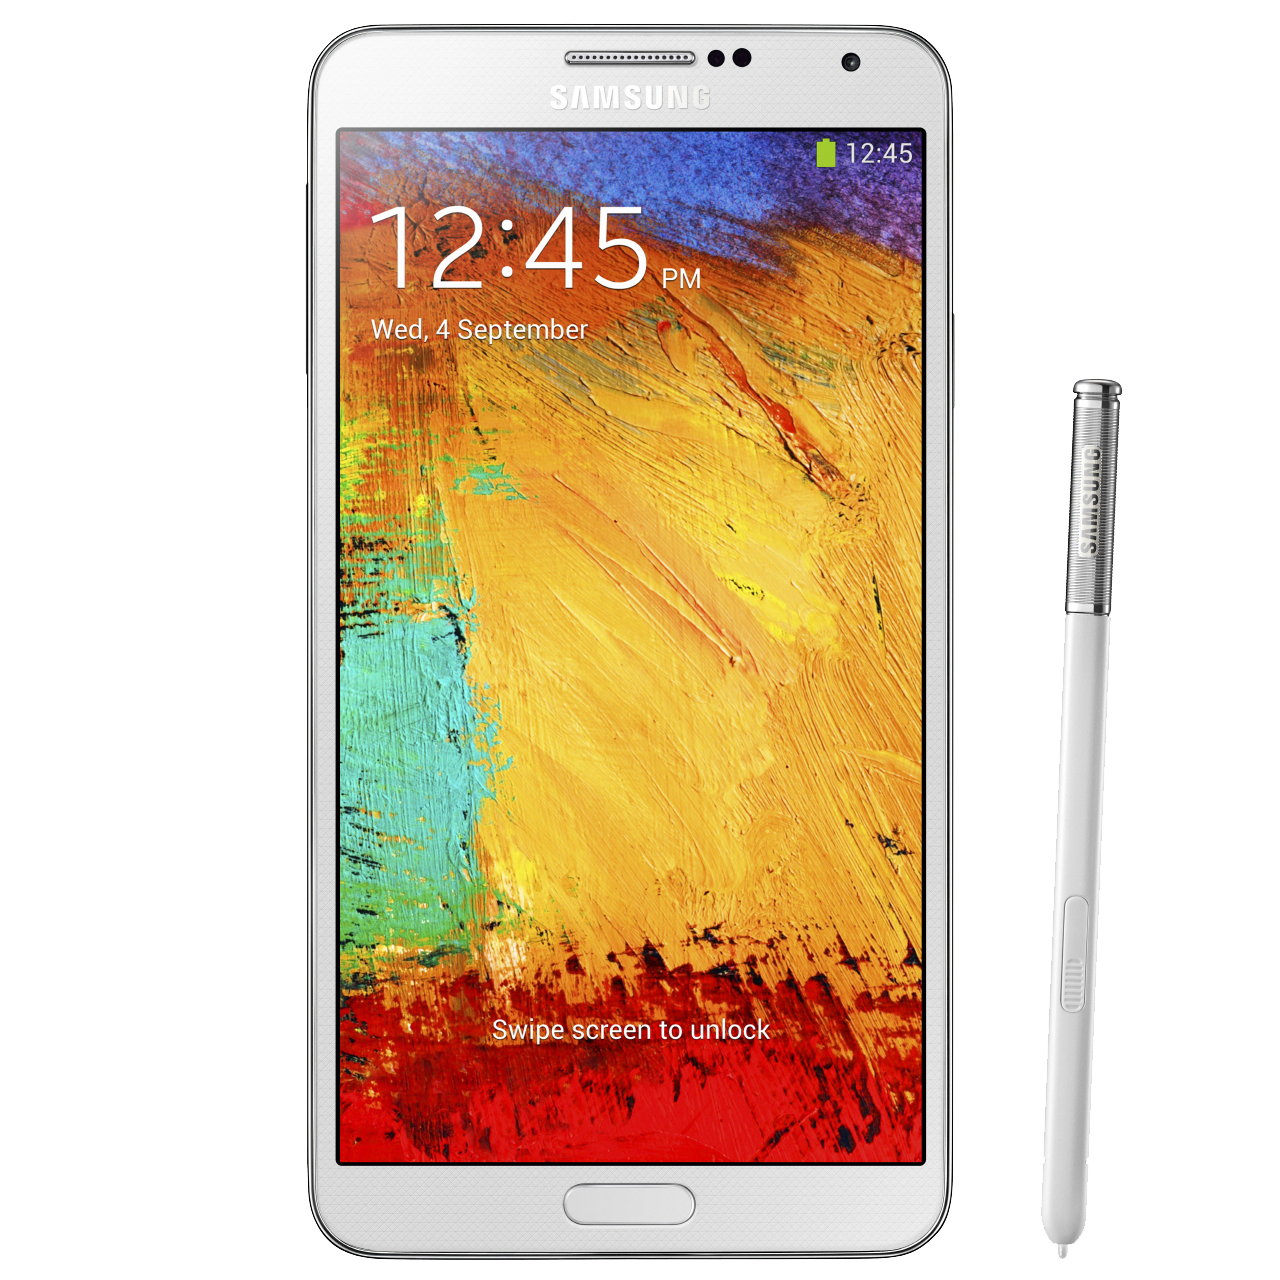 Samsung Galaxy Note 3 Price In Different Countries ...